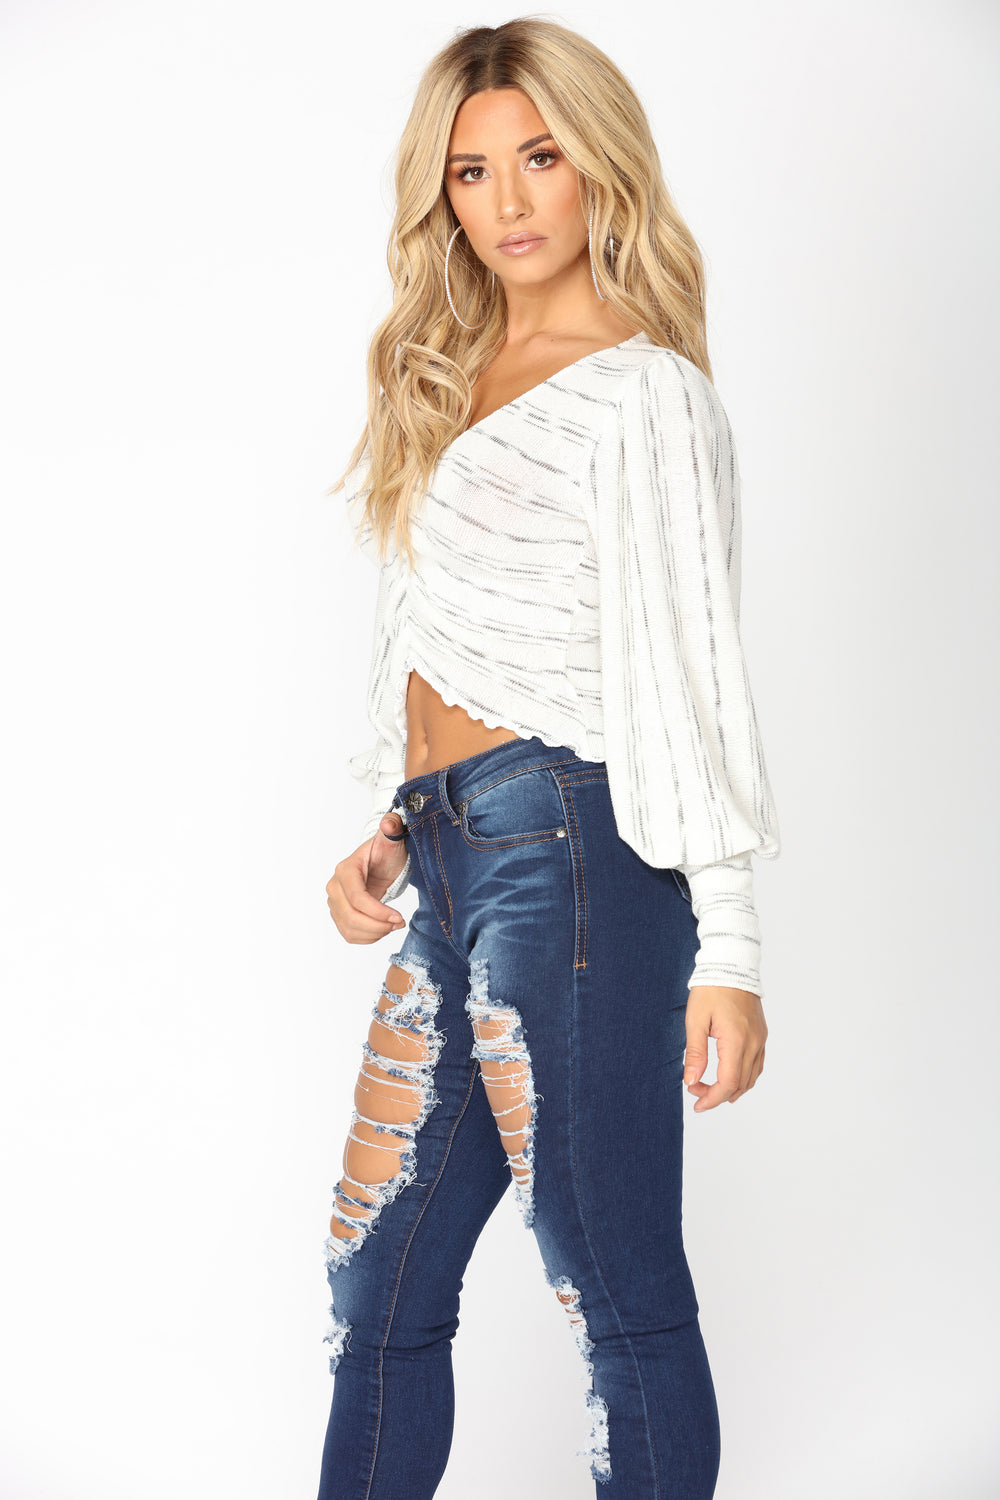 The Best Of Me Striped Top - Ivory